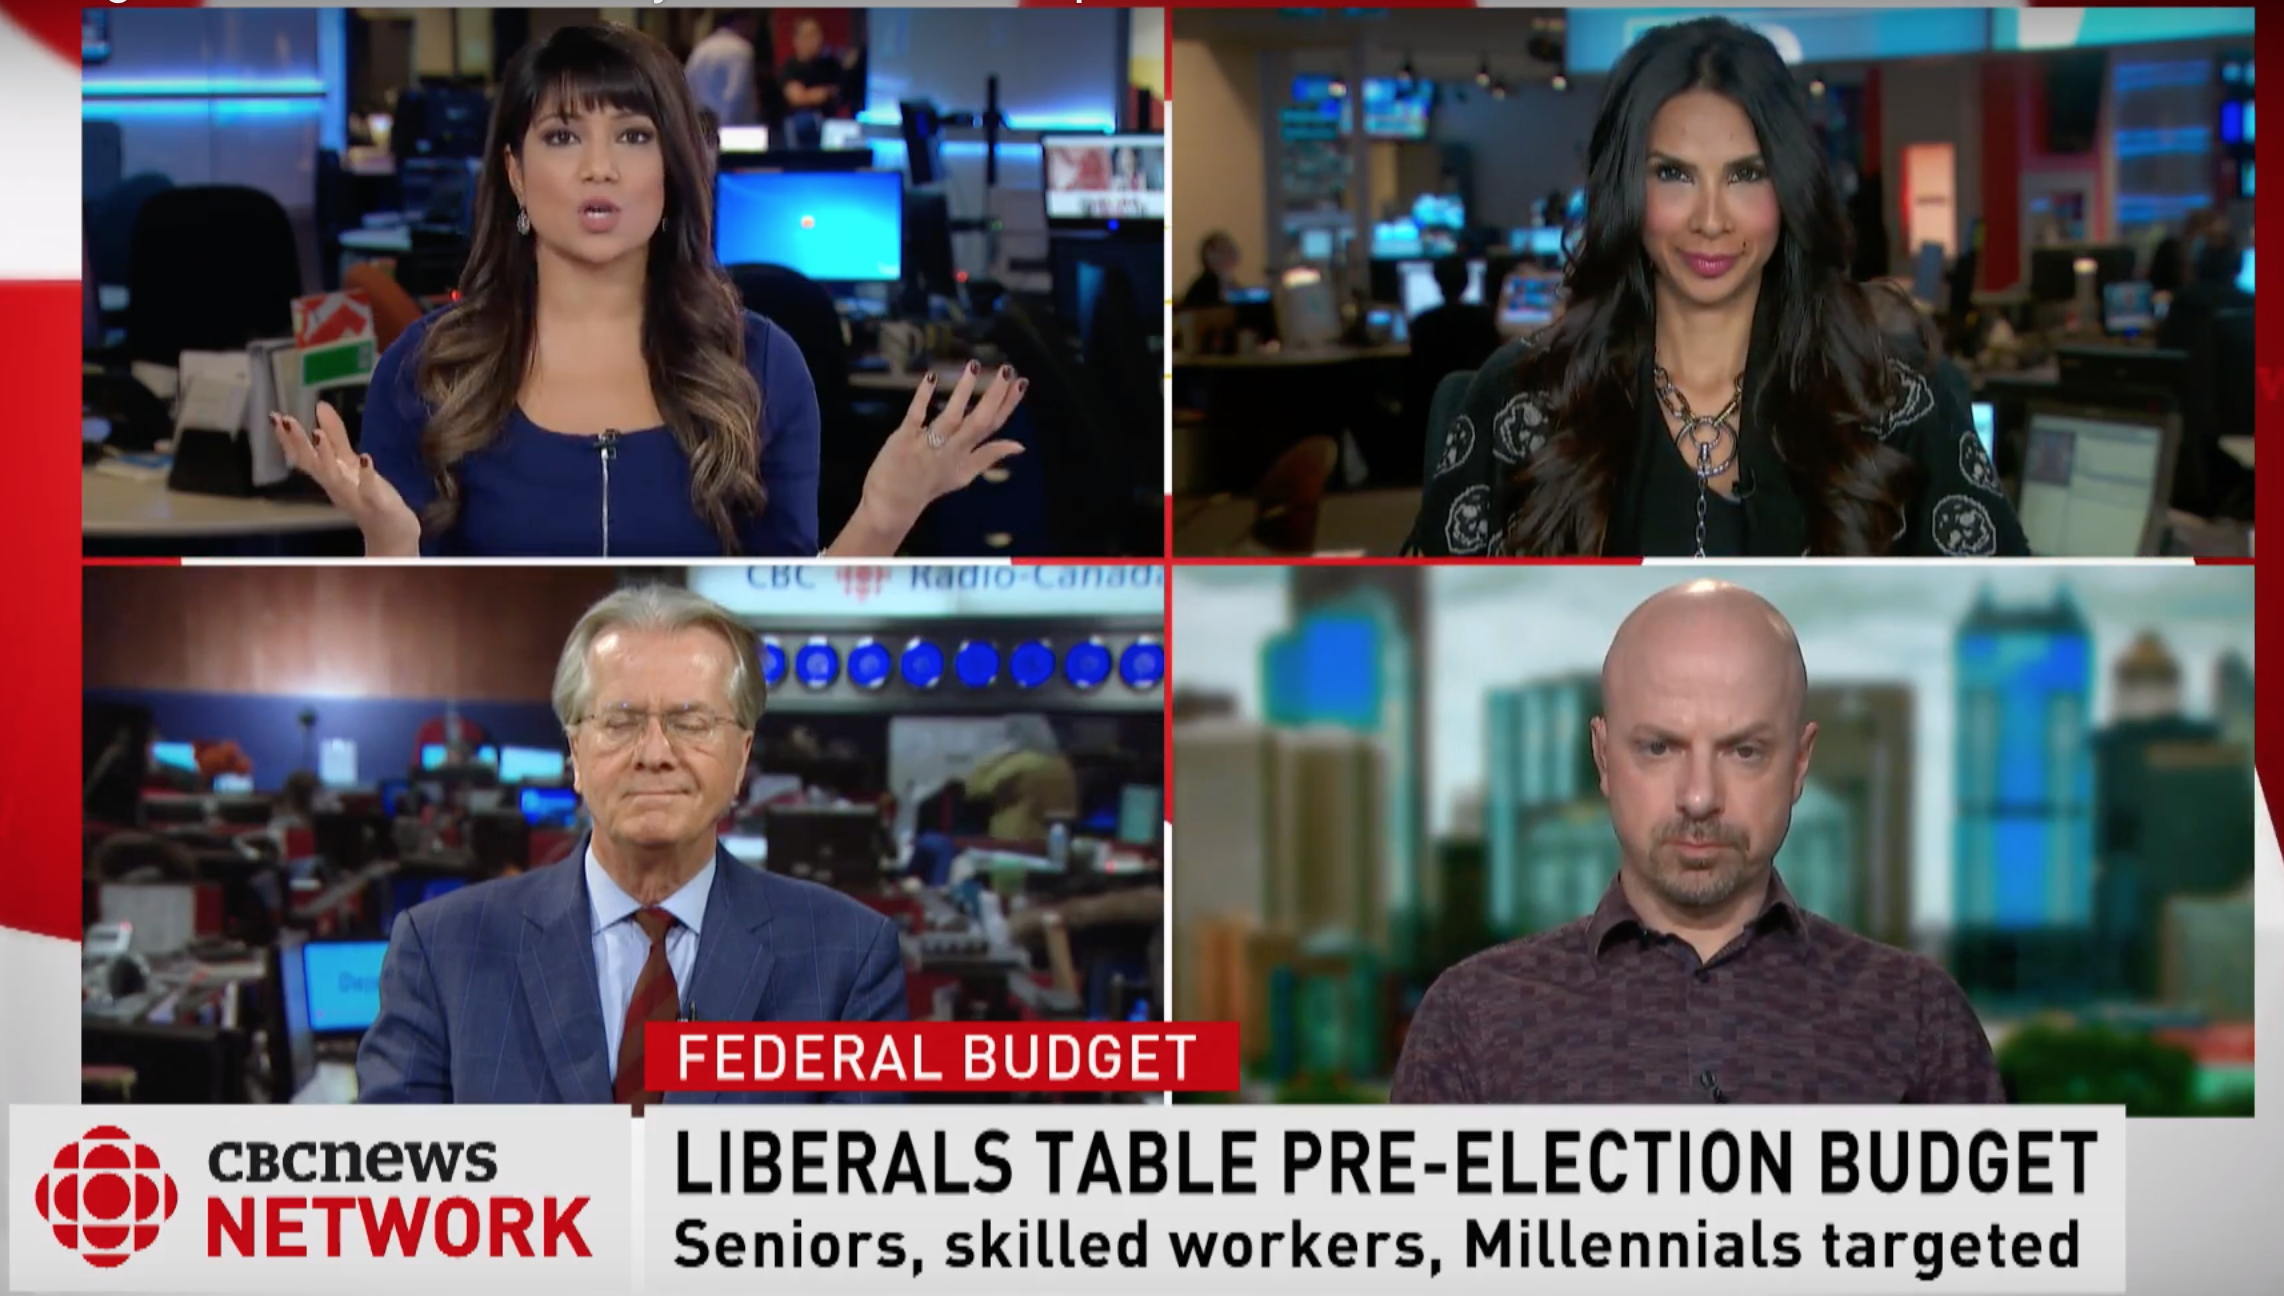 Liberals Table Pre-Election Budget